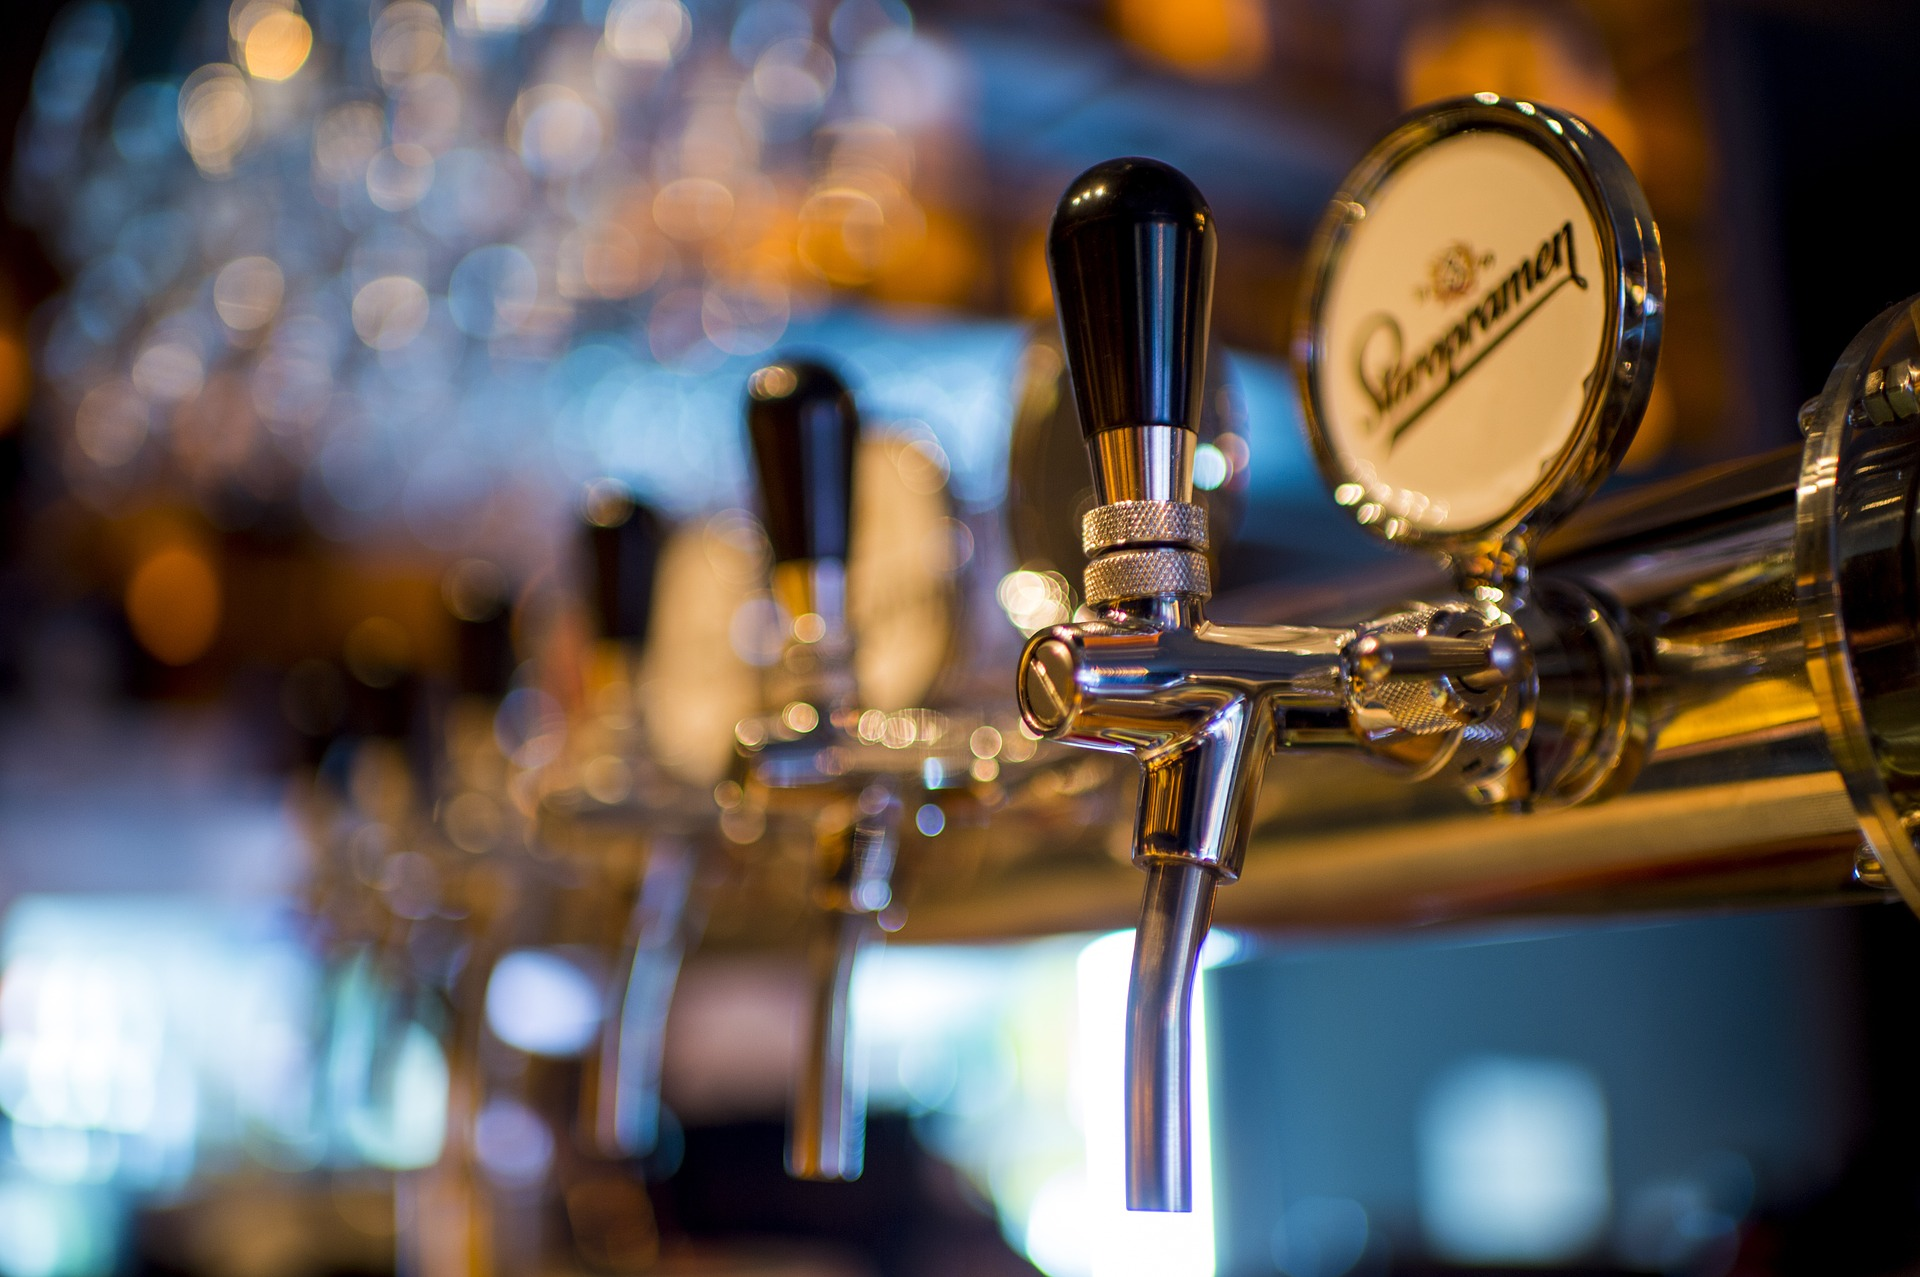 Chambers has a large selection of beers and brews with bargain Happy Hour prices.